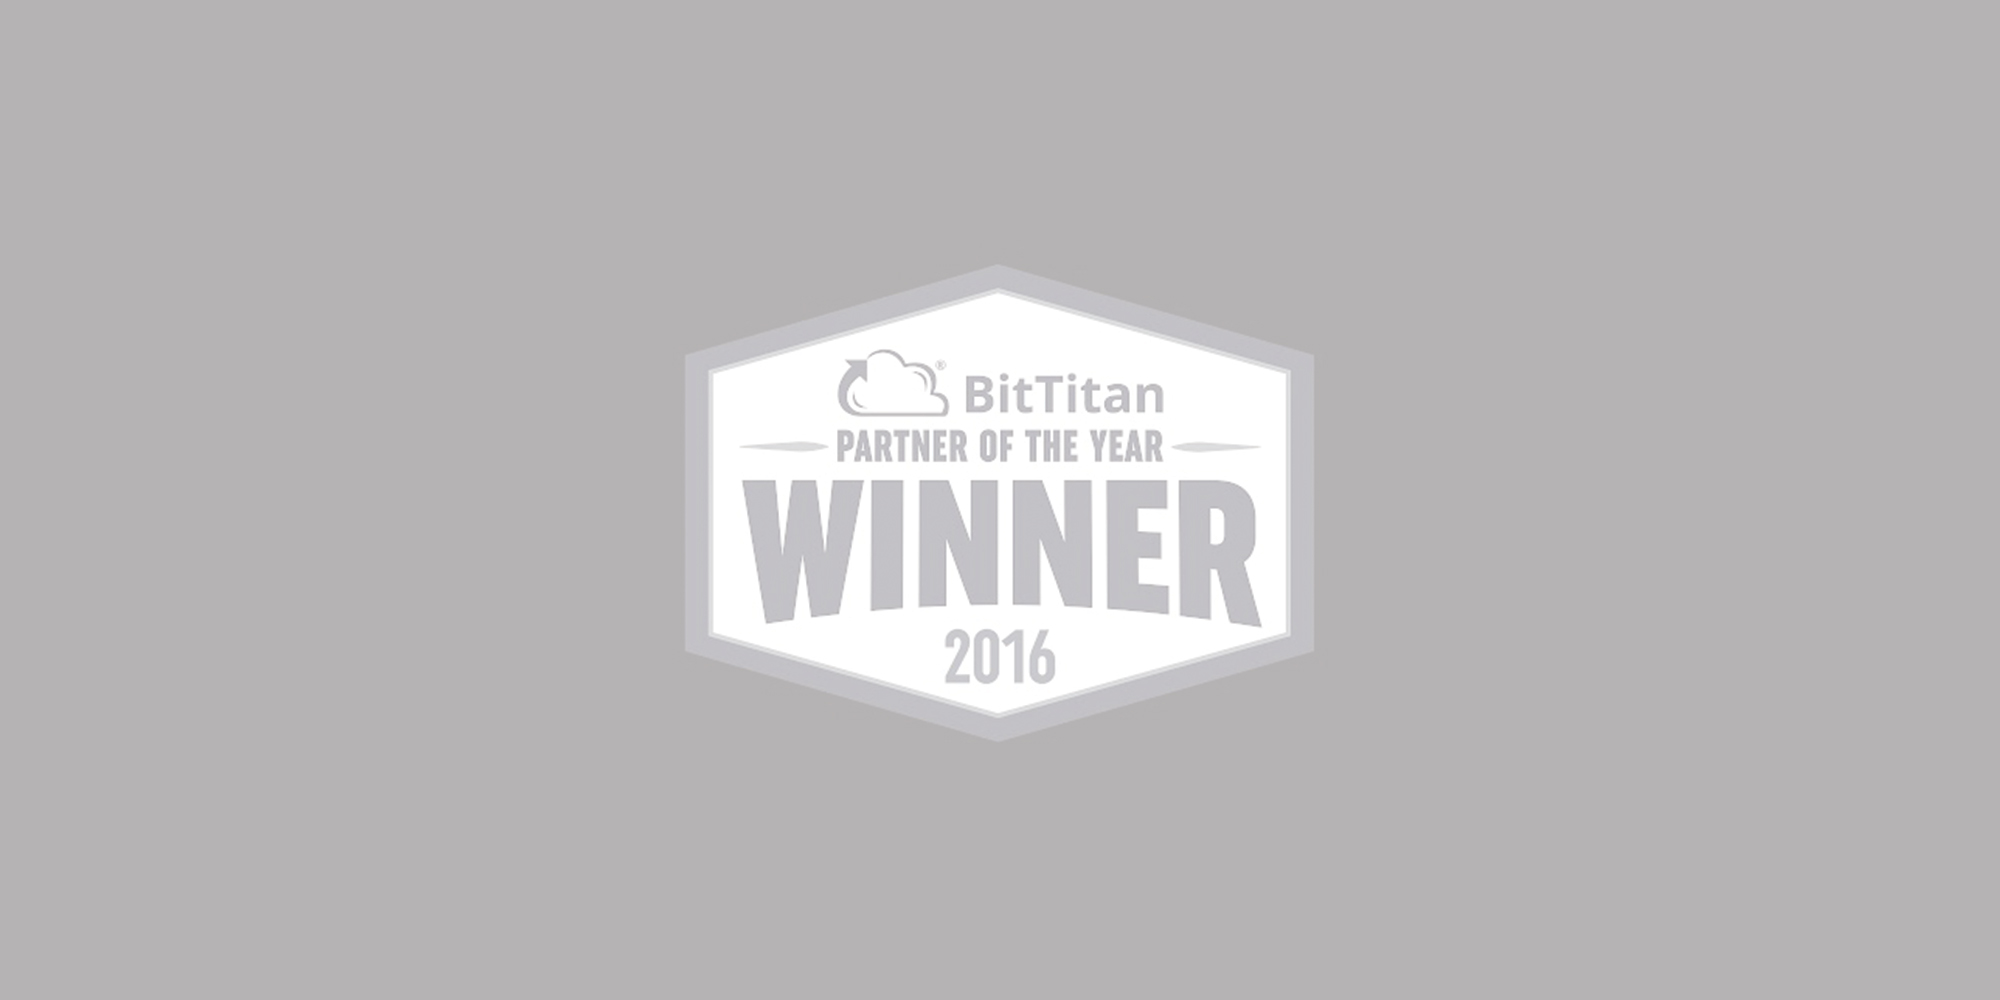 ProServeIT is excited to win the BitTitan's Canadian Partner of the Year 2016!